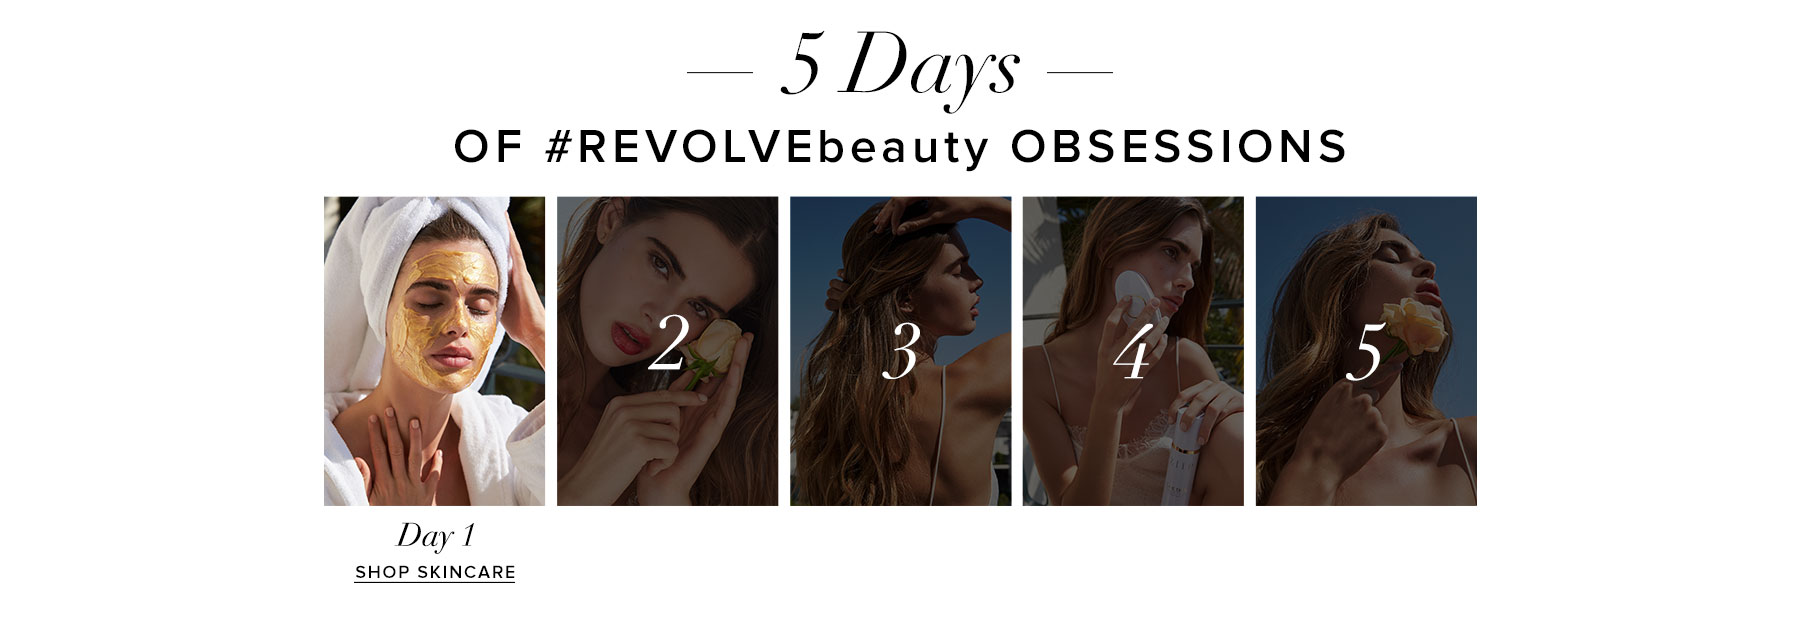 5 Days of REVOLVEbeauty Obsessions. Day 1. Shop Skincare.